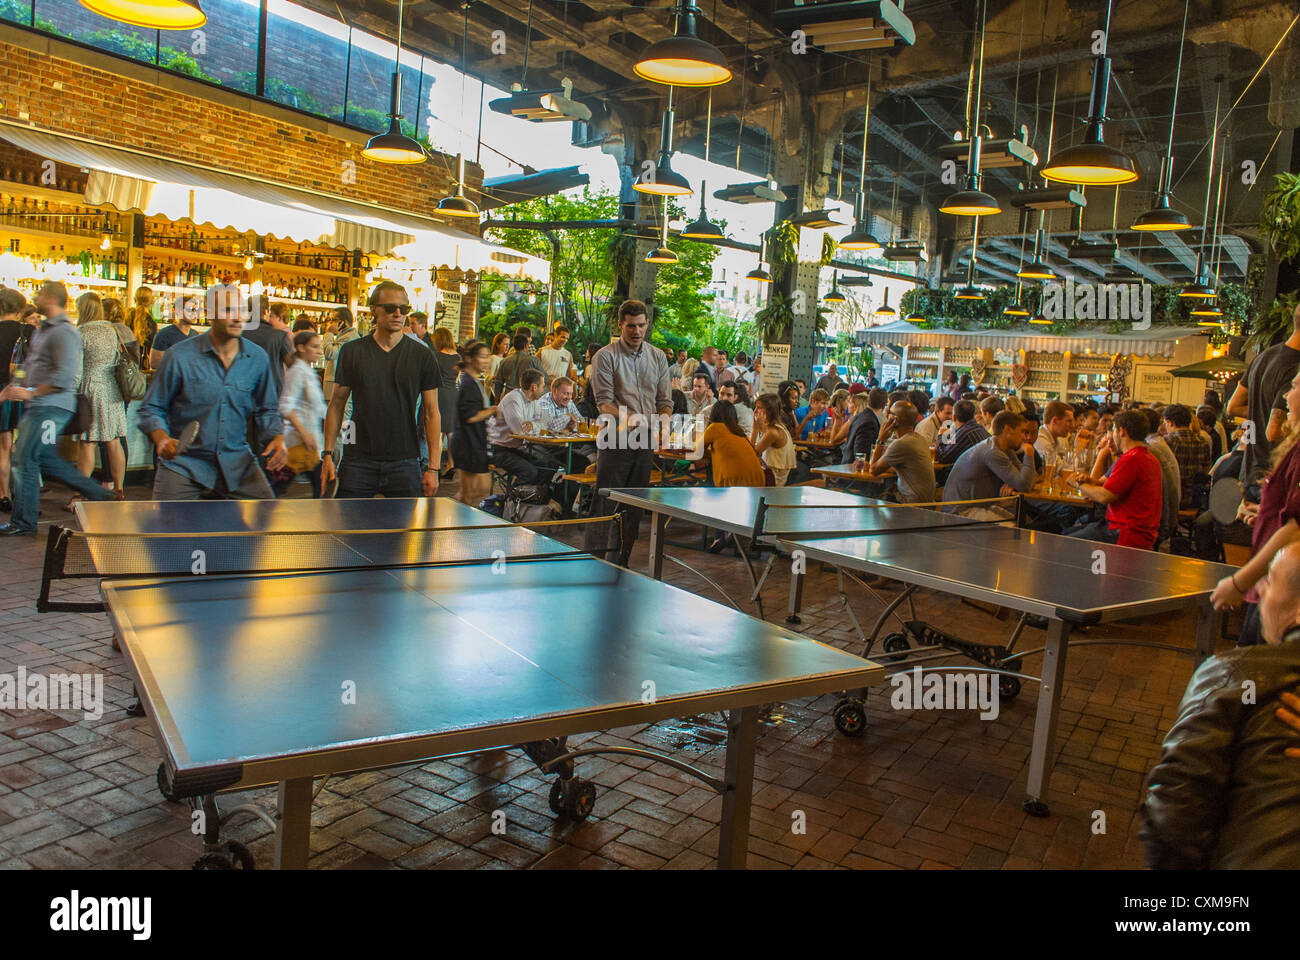 Beer Pong Stock Photos & Beer Pong Stock Images - Alamy